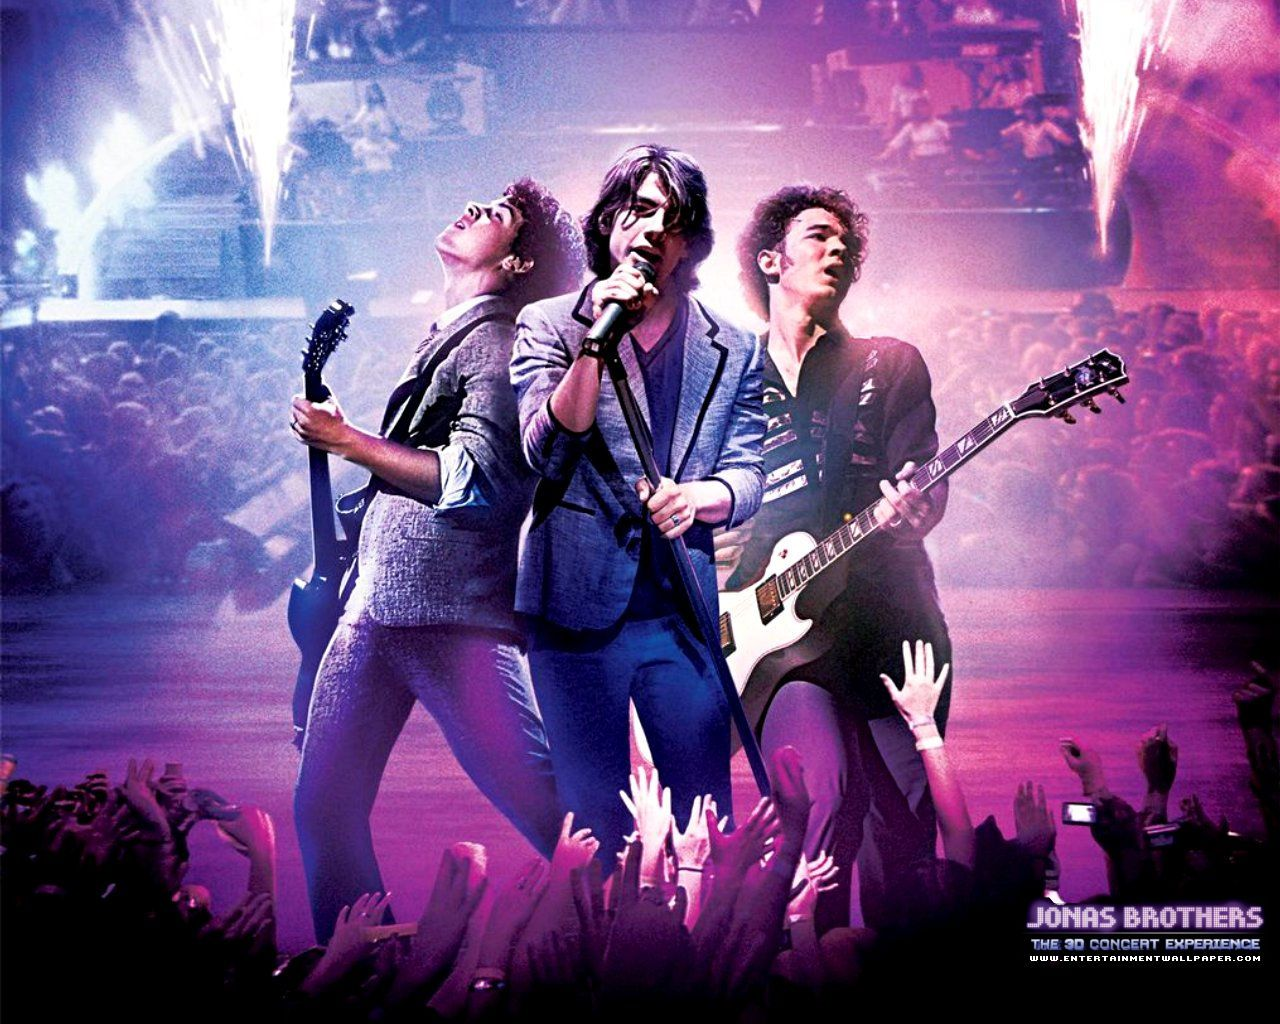 Jonas Brothers: The 3D Concert Experience Wallpaper - #10015829 ...